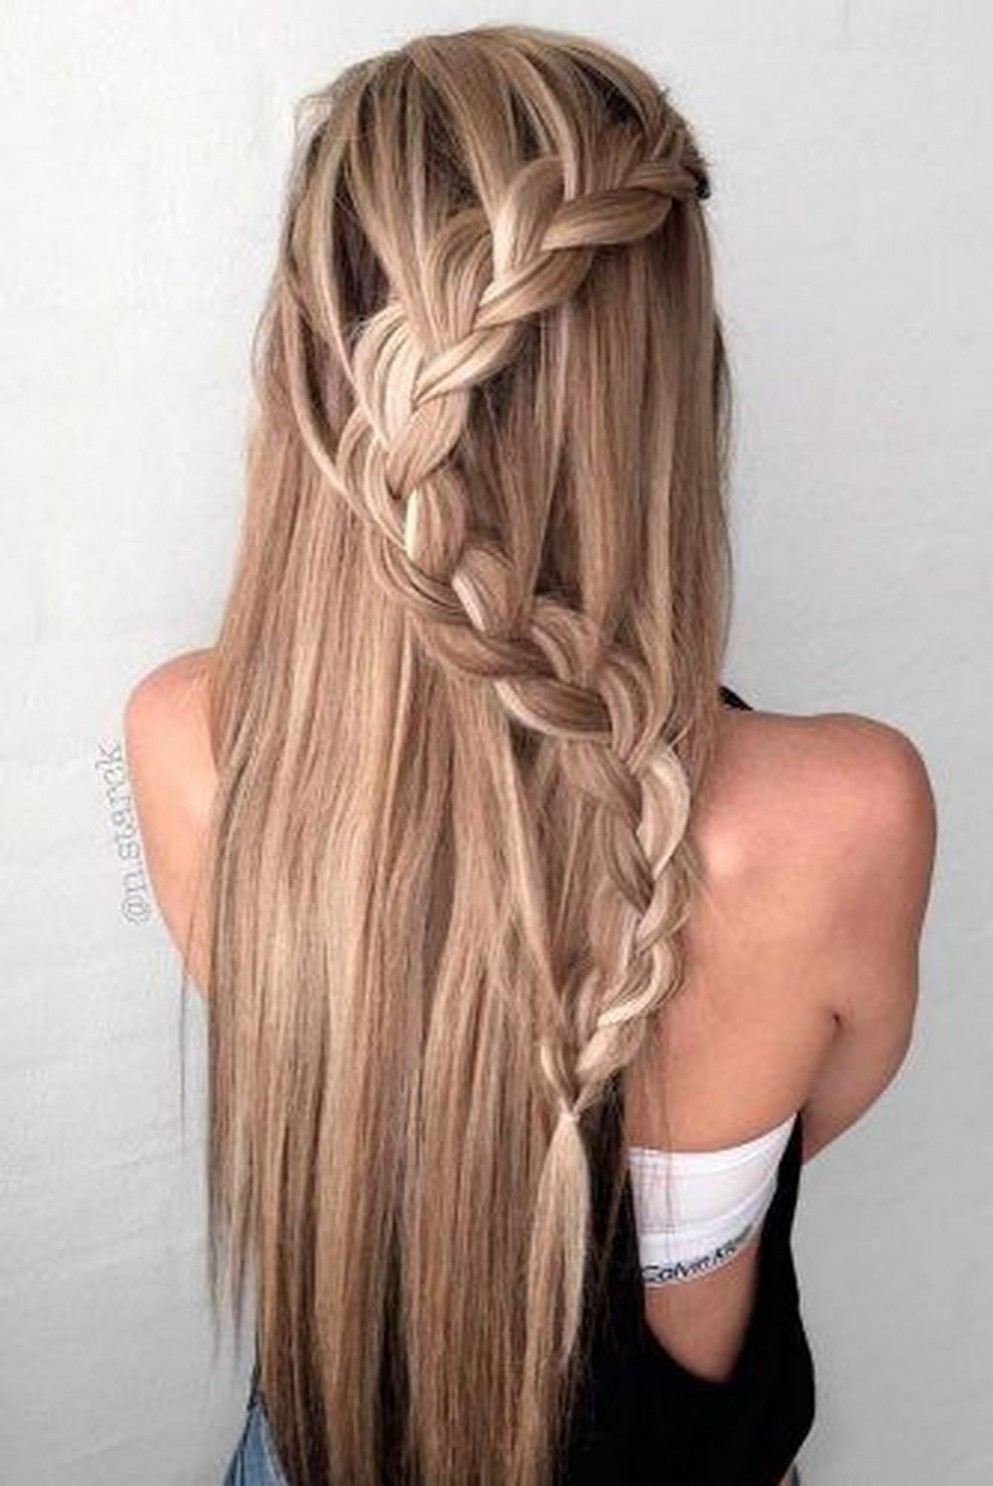 10 Stylish Casual Prom Hairstyles Ideas For Your Beautiful Night Prom Straight Hairstyles